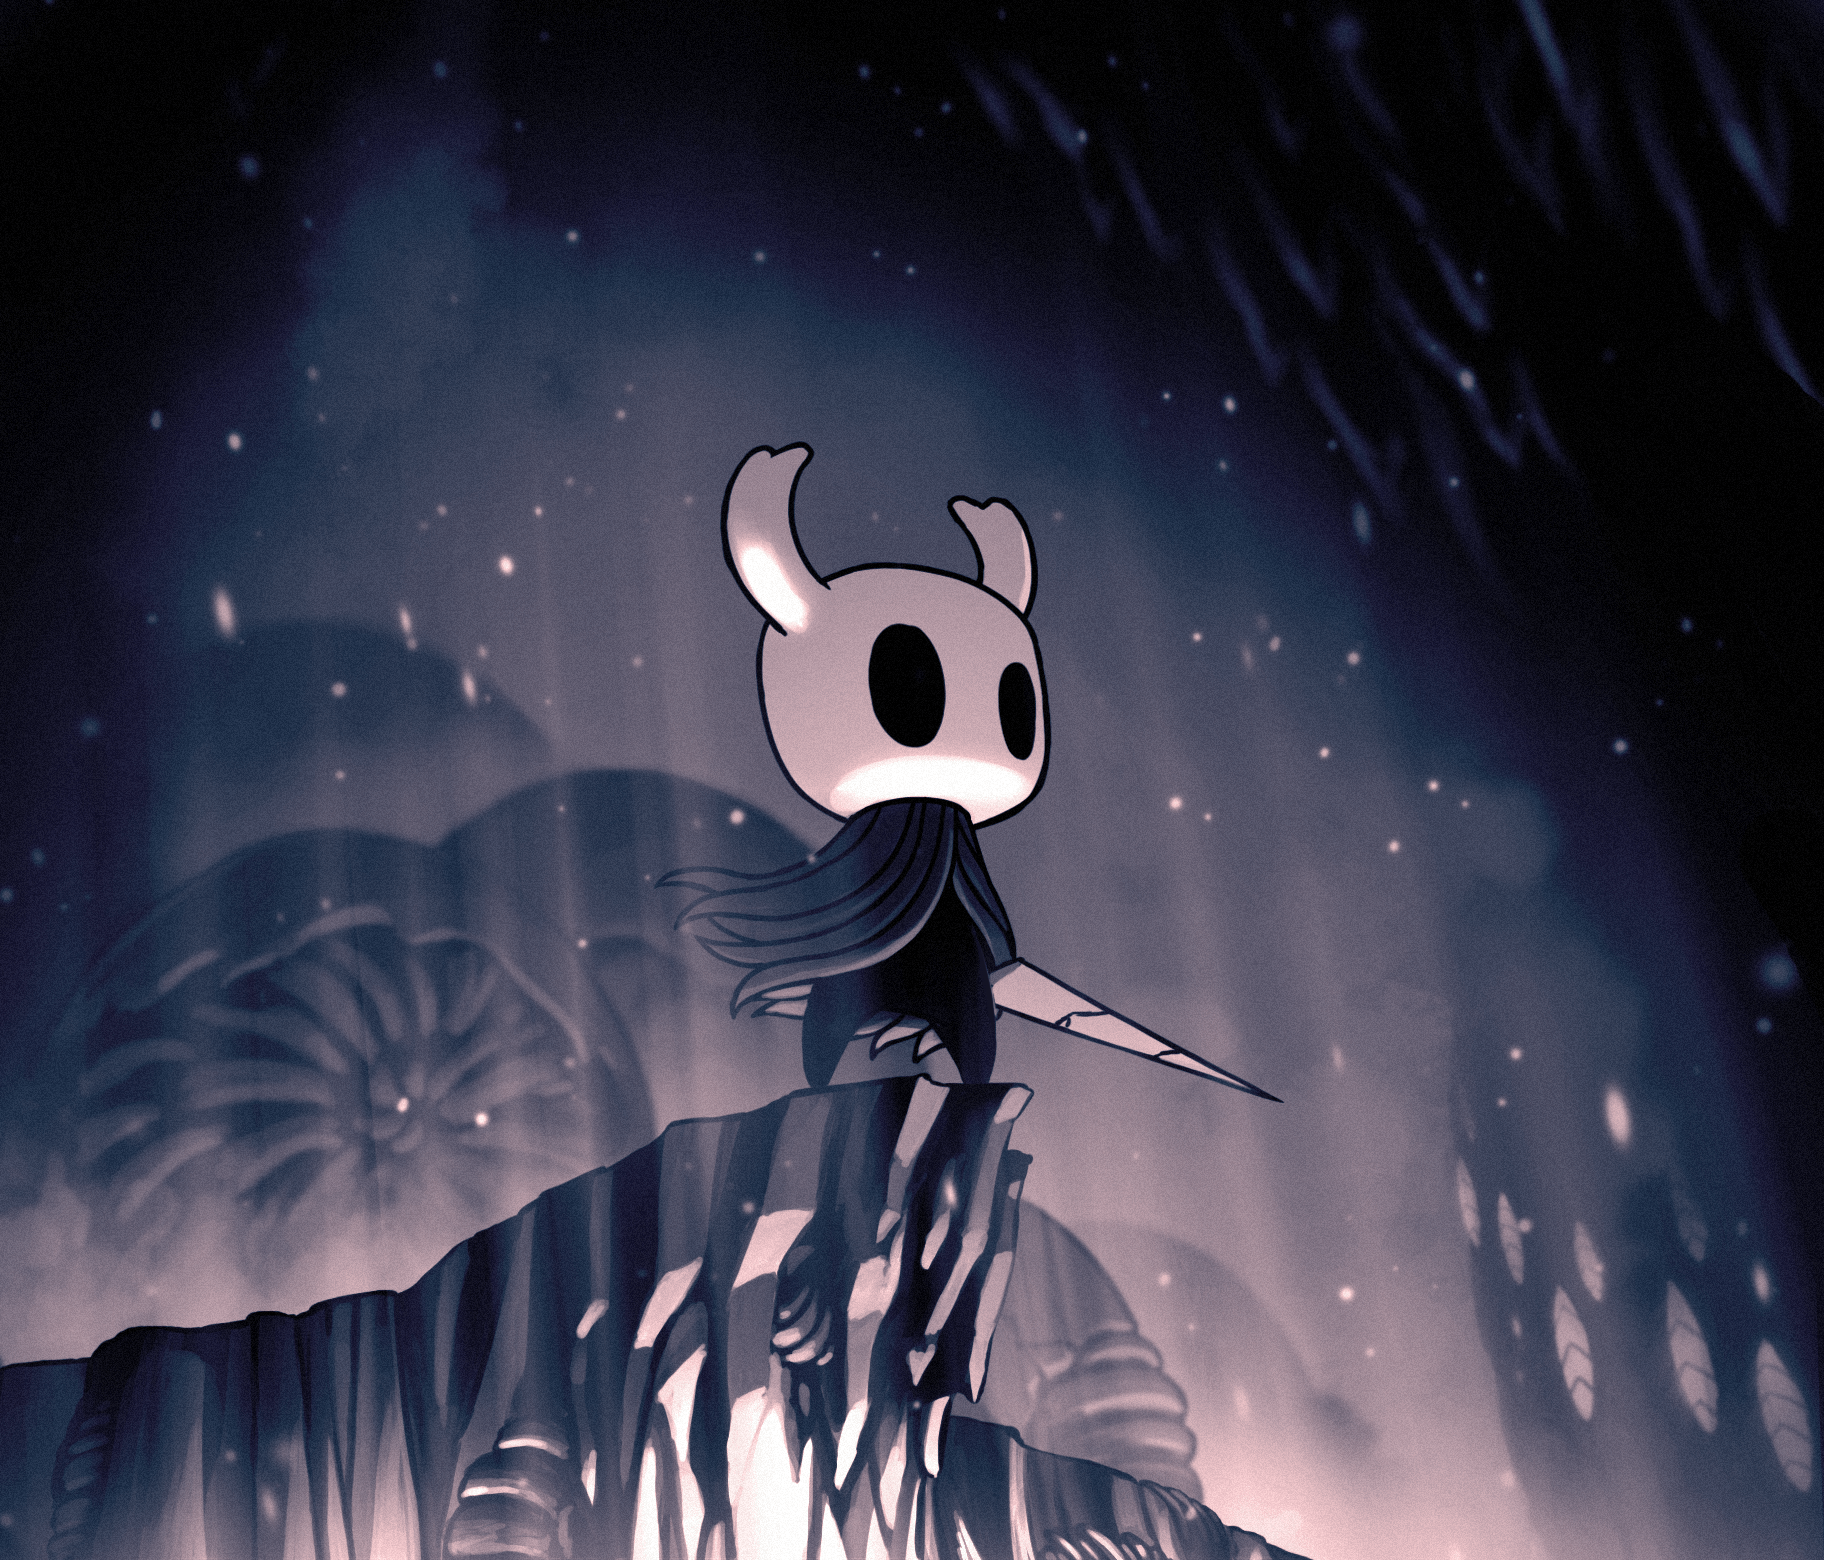 Hollow Knight Quirrel Wallpapers - Wallpaper Cave